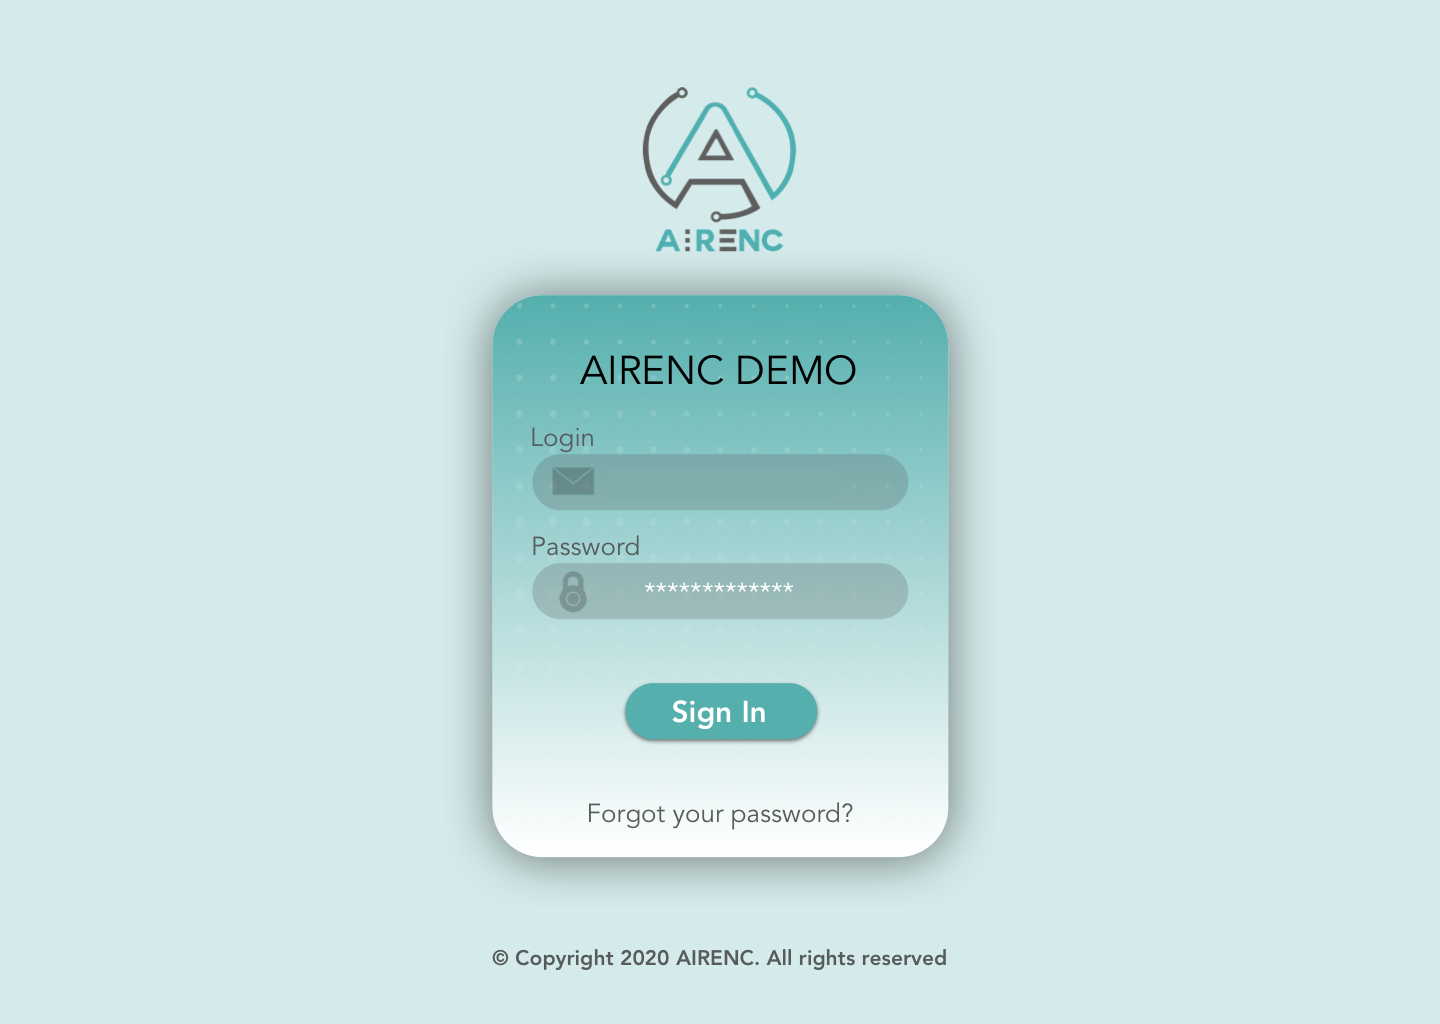 Log In screen of AIRENC platform